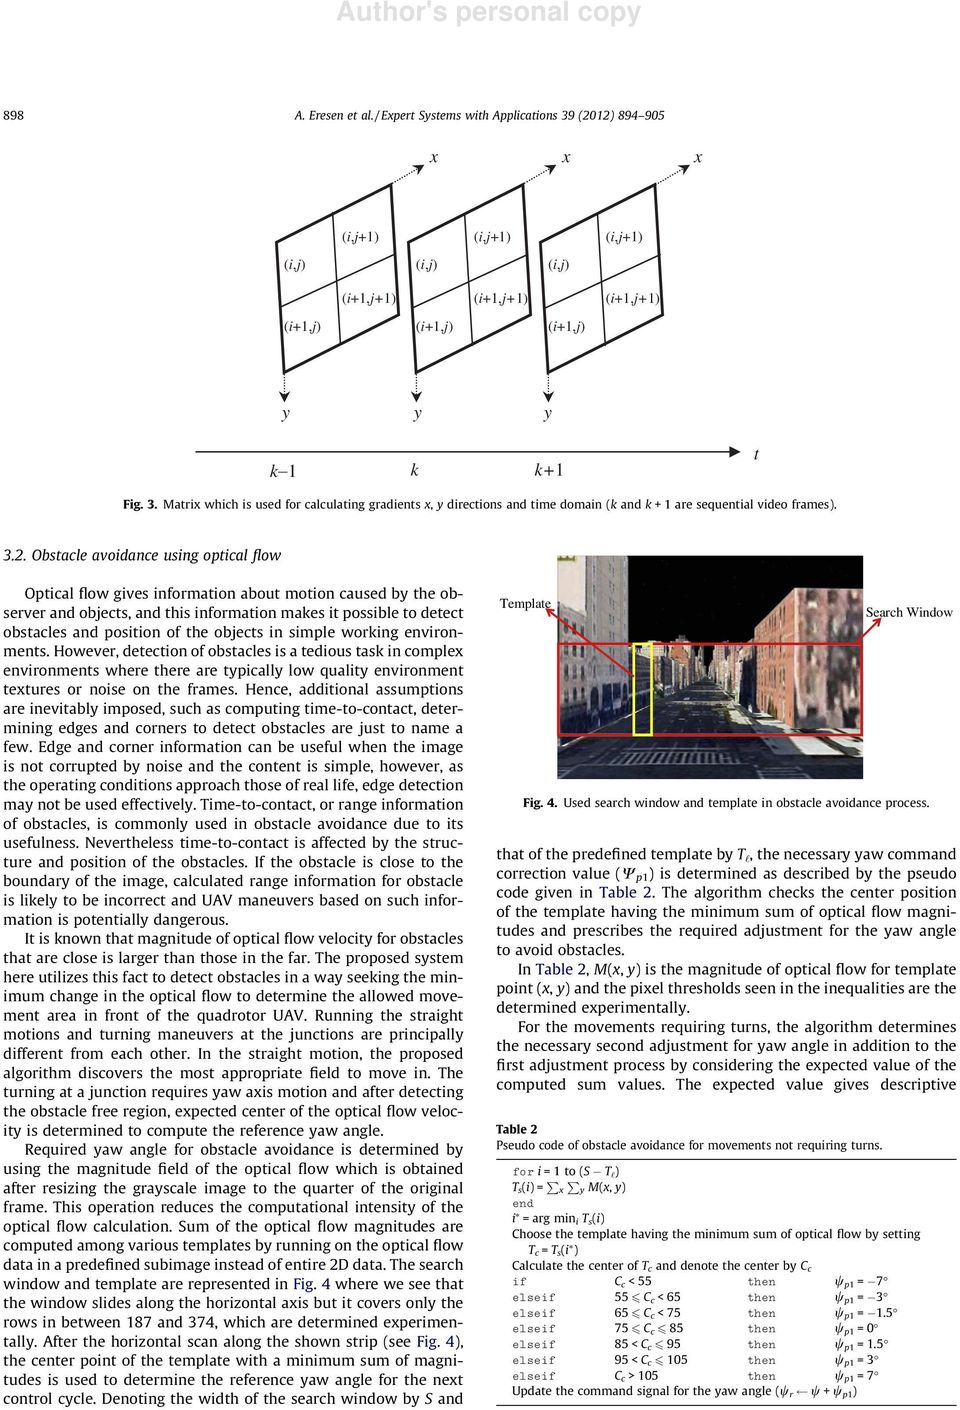 Obstacle avoidance using optical flow Optical flow gives information about motion caused by the observer and objects, and this information makes it possible to detect obstacles and position of the